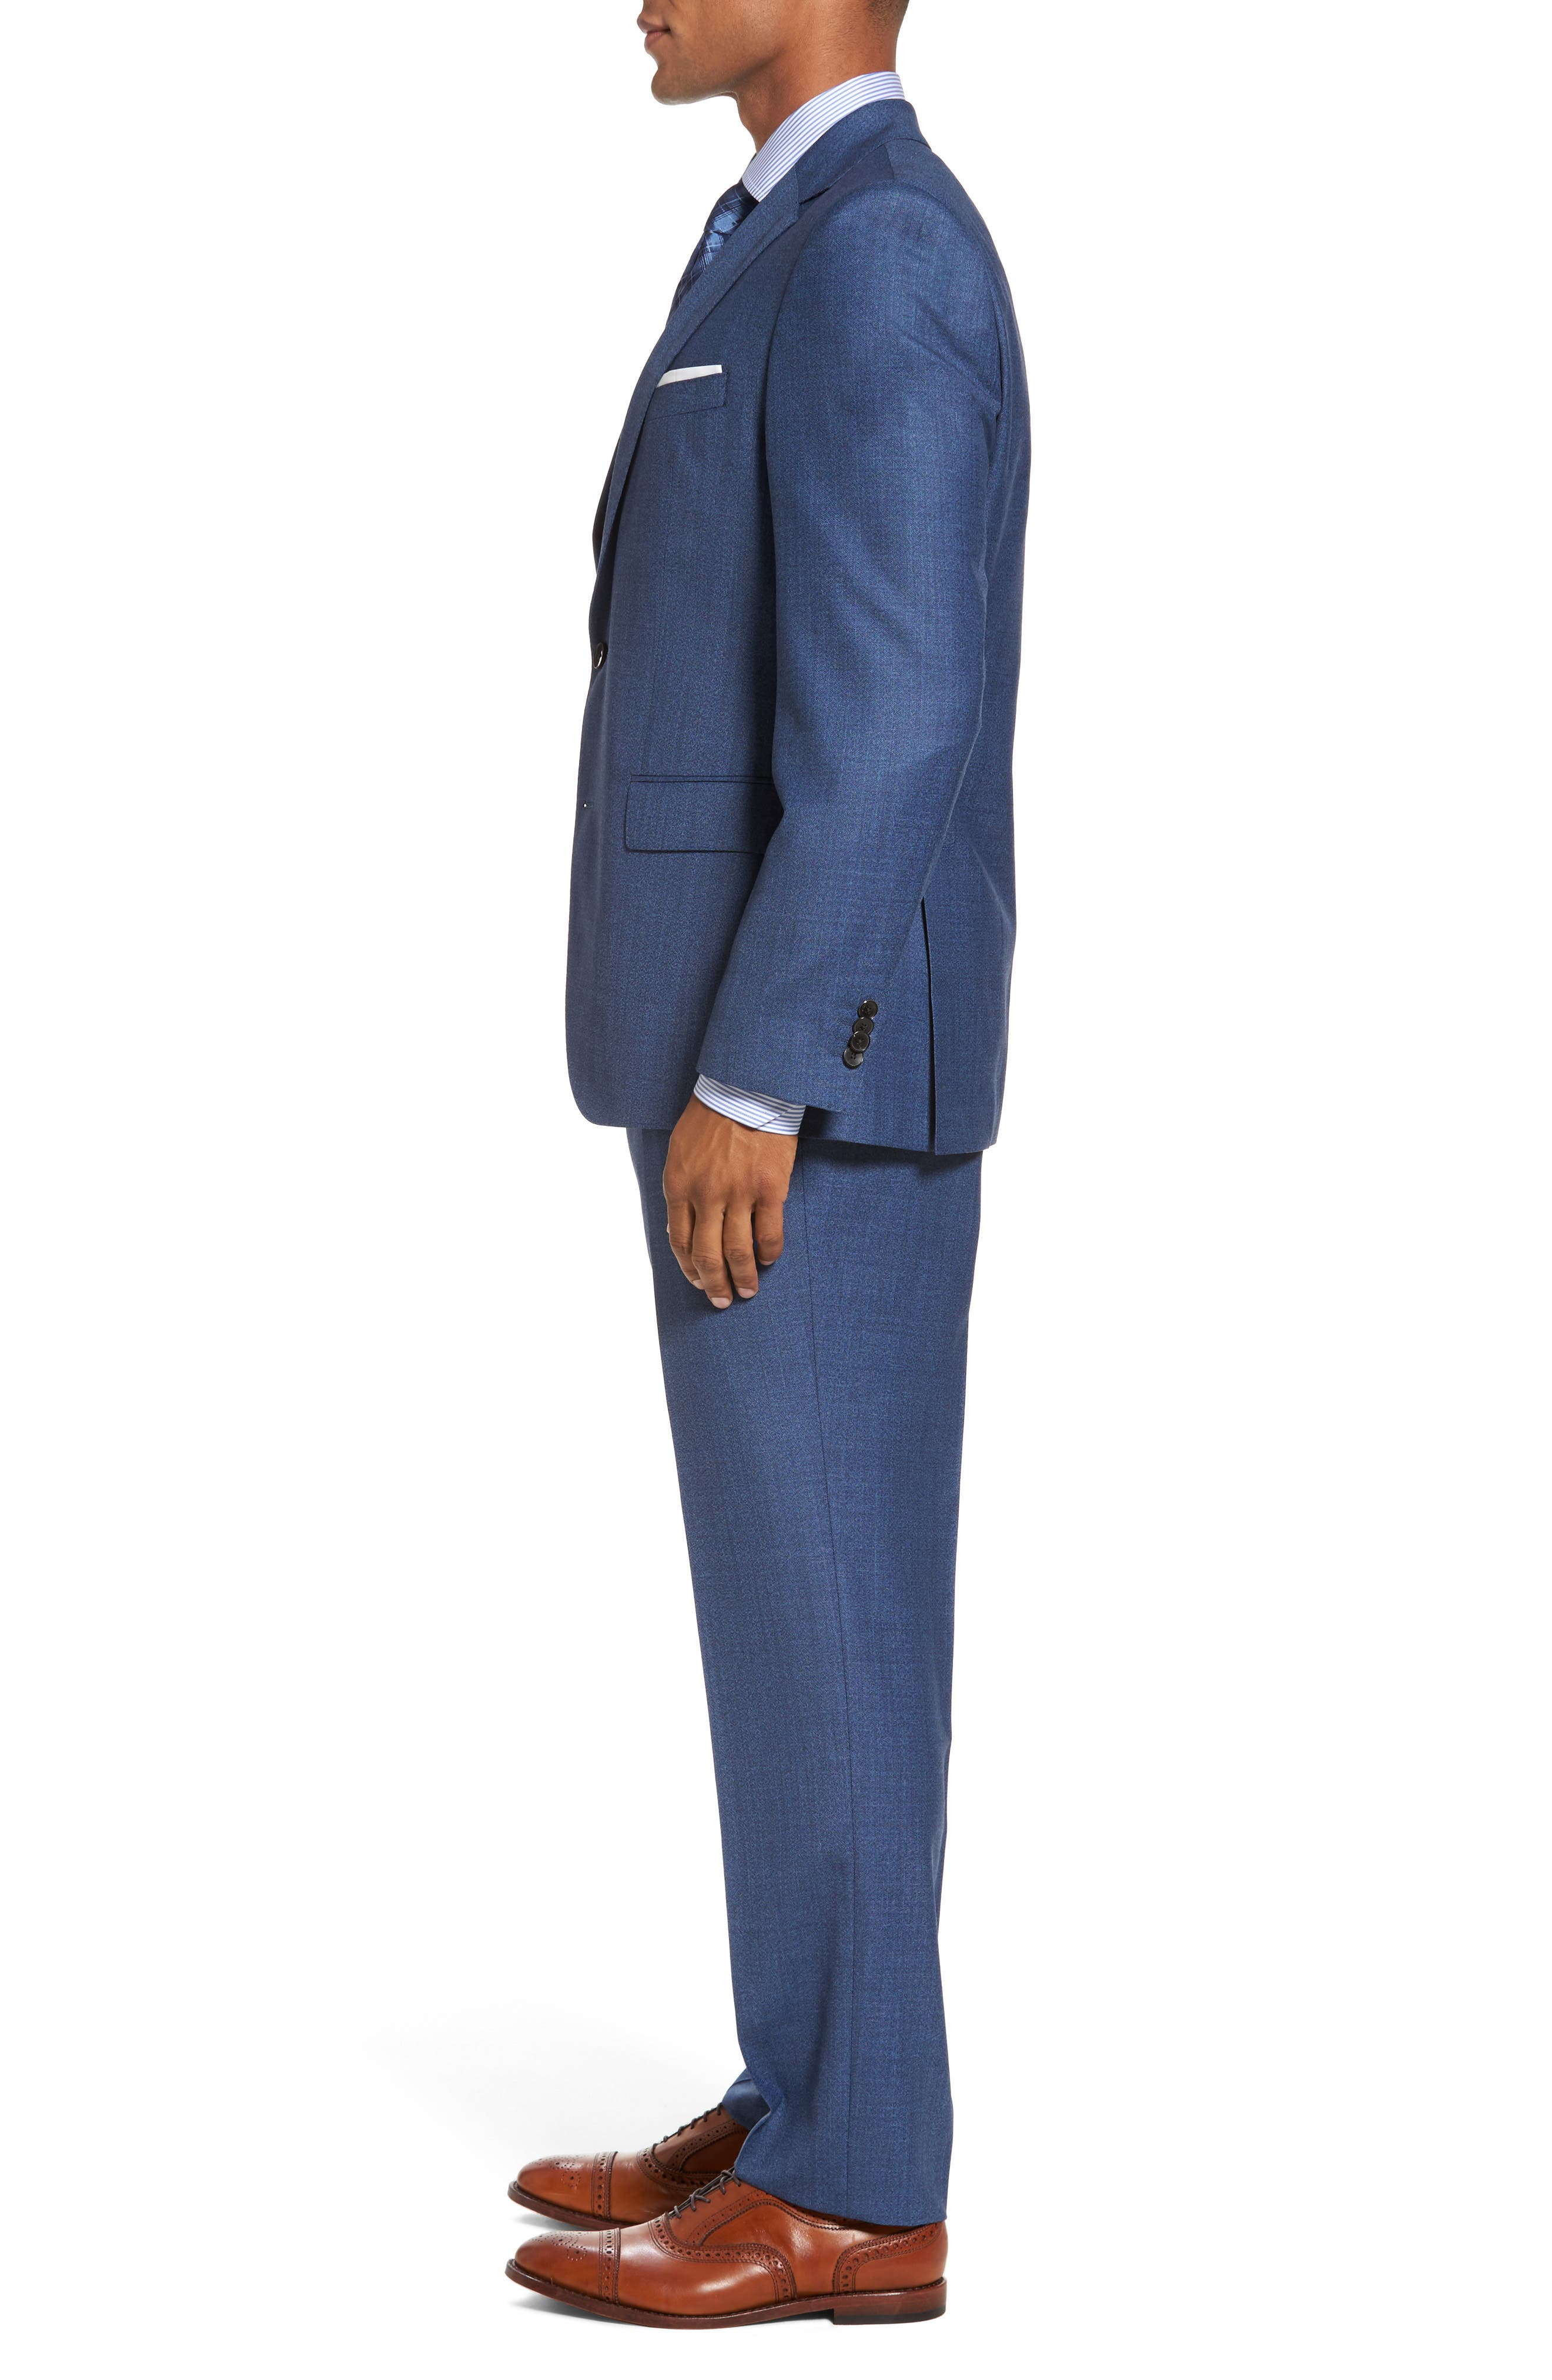 Johnstons/Lenon Classic Fit Solid Wool Suit,                             Alternate thumbnail 3, color,                             421